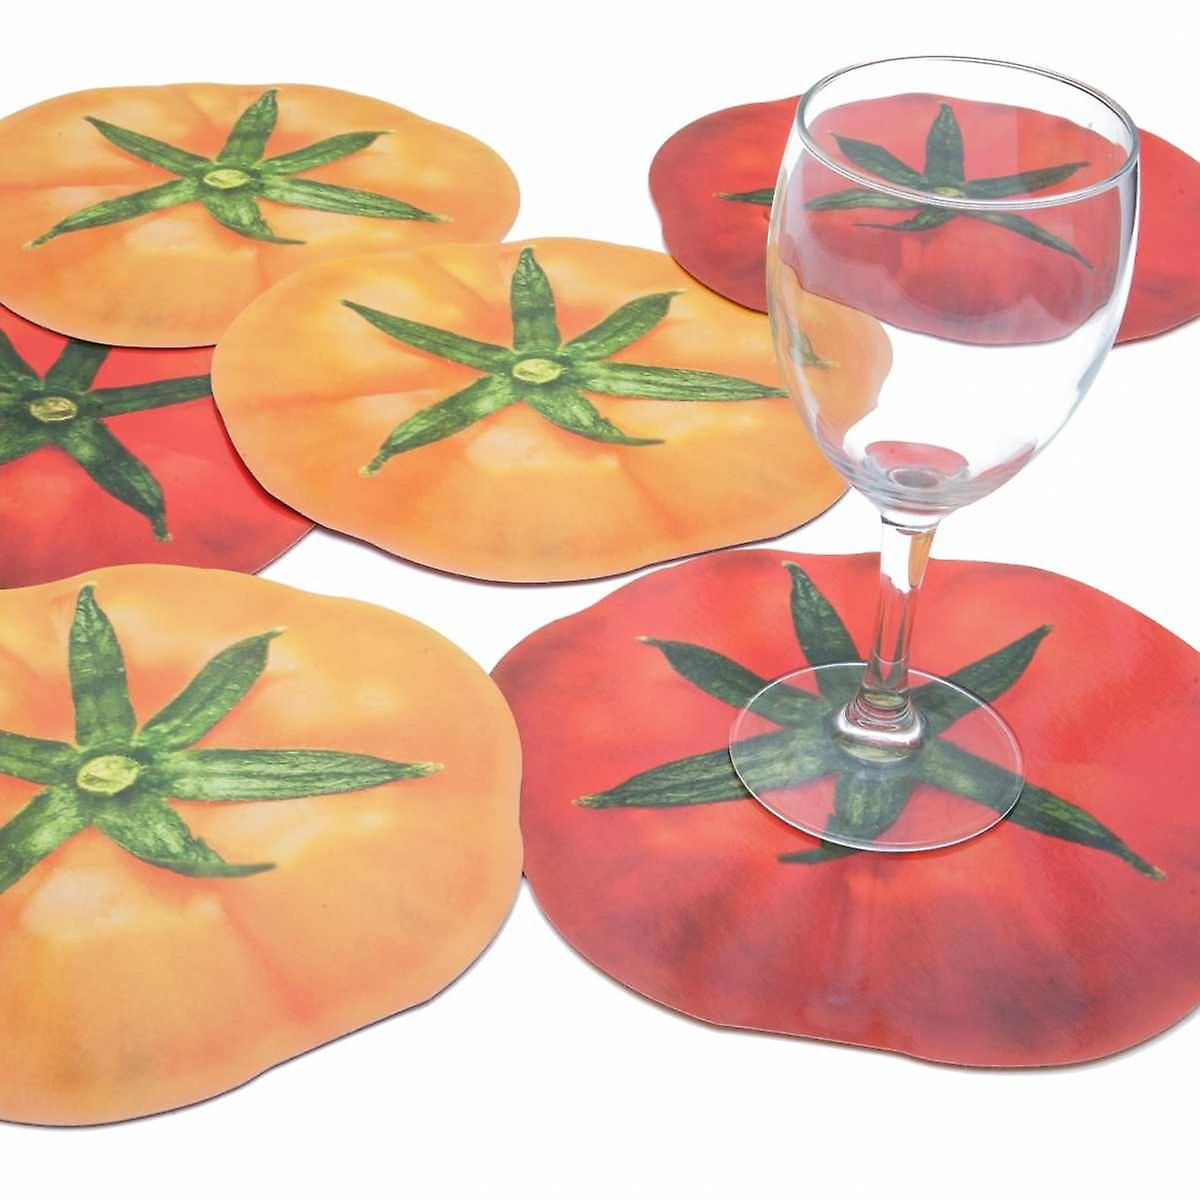 6 glass coasters motif tomato red and yellow